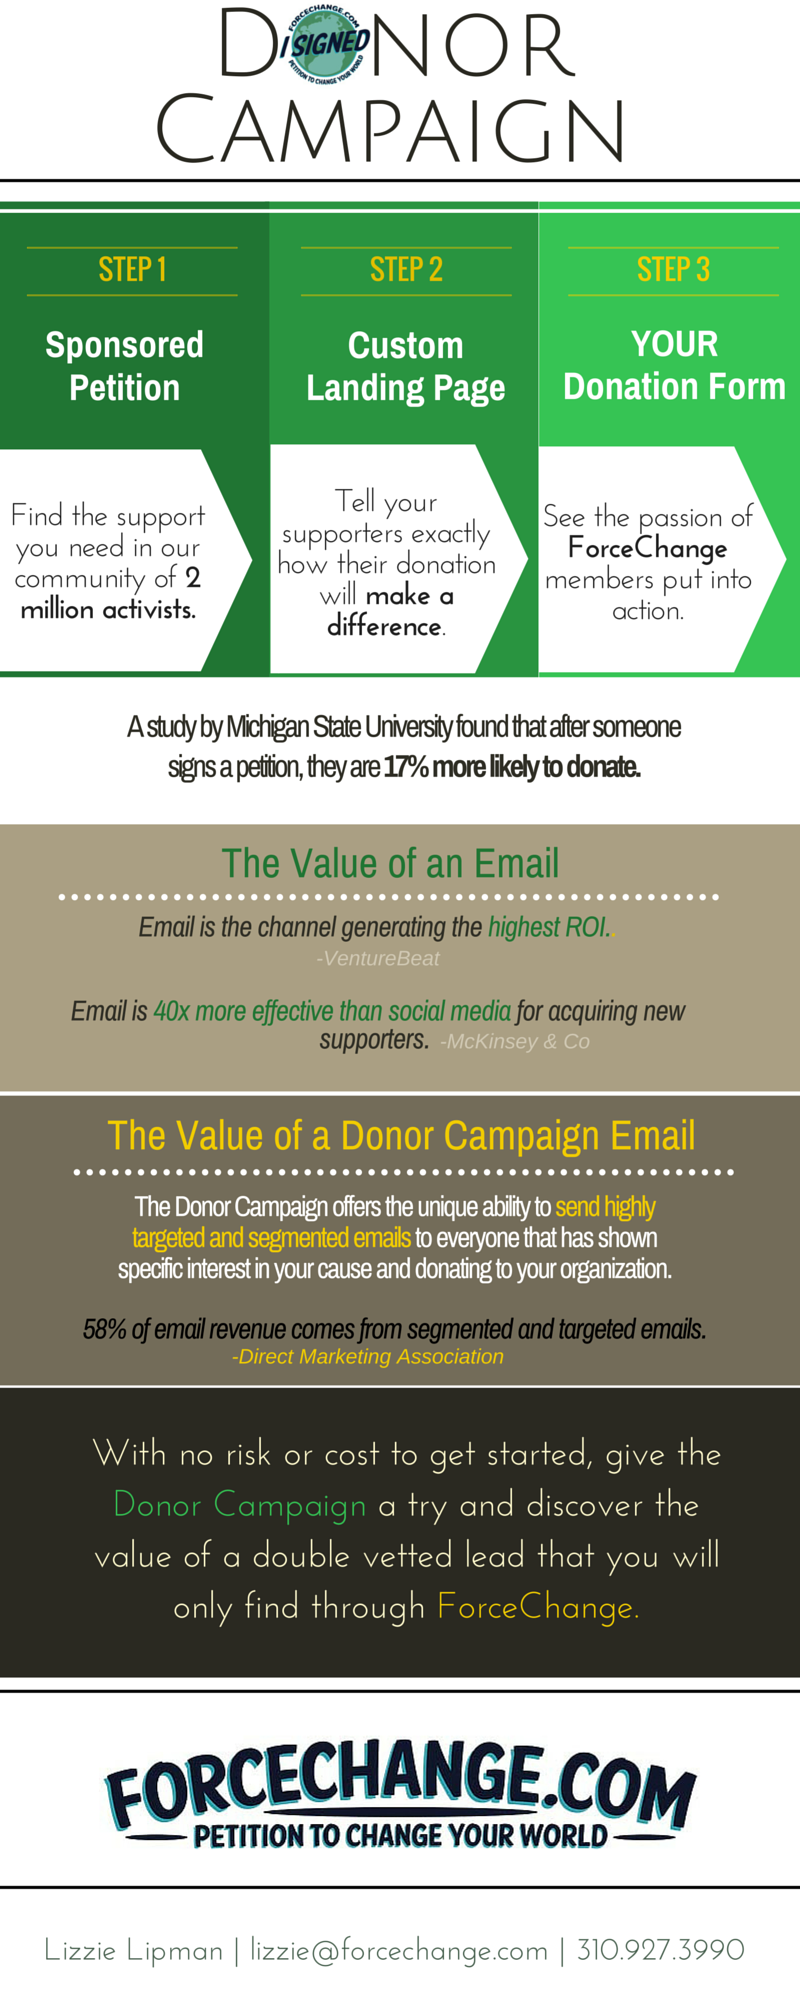 Donor Campaign Infographic